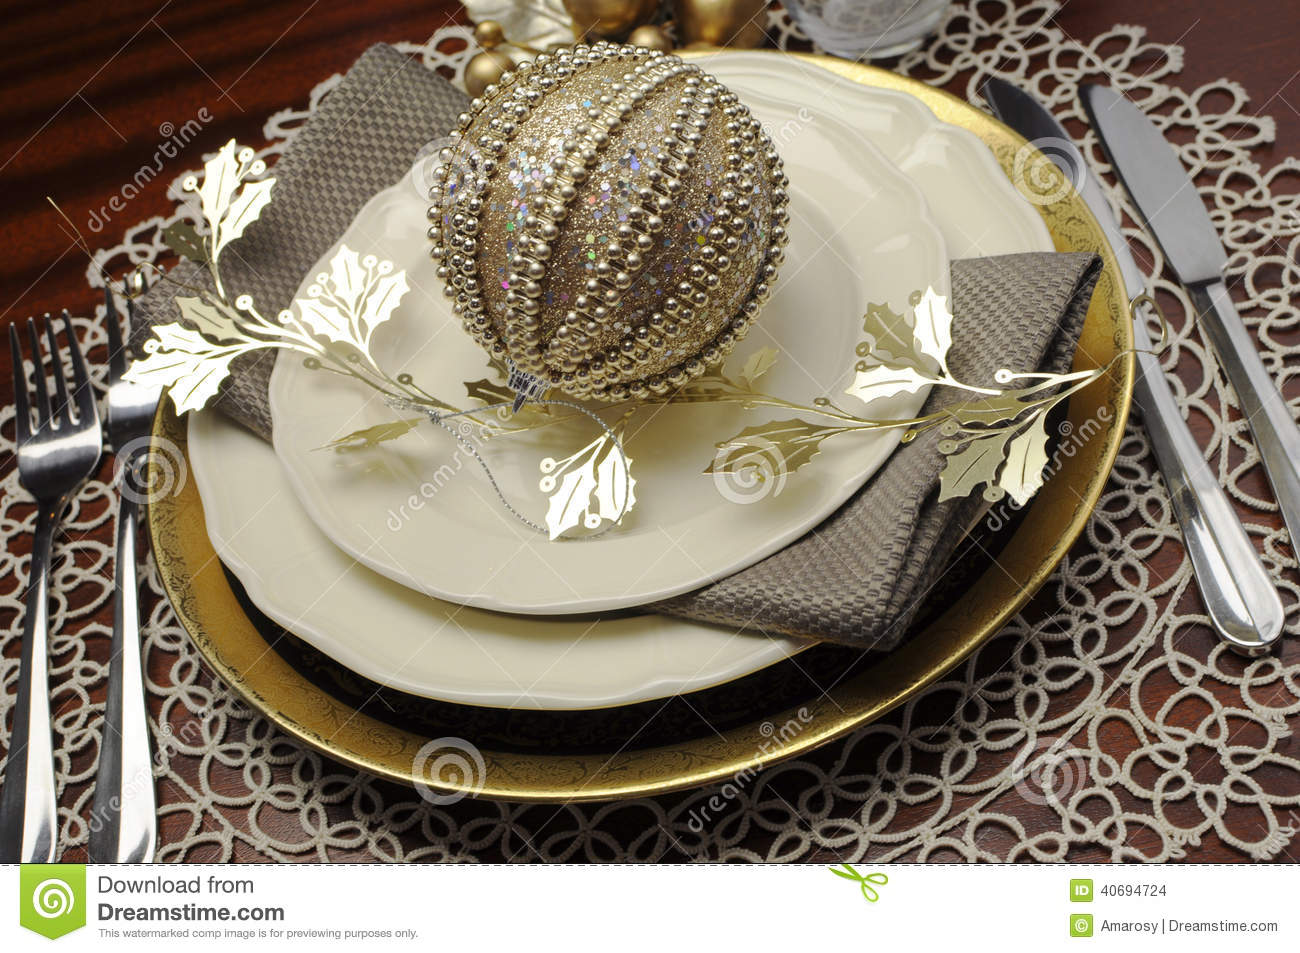 Latest Trend Of Gold Metallic Theme Christmas Formal